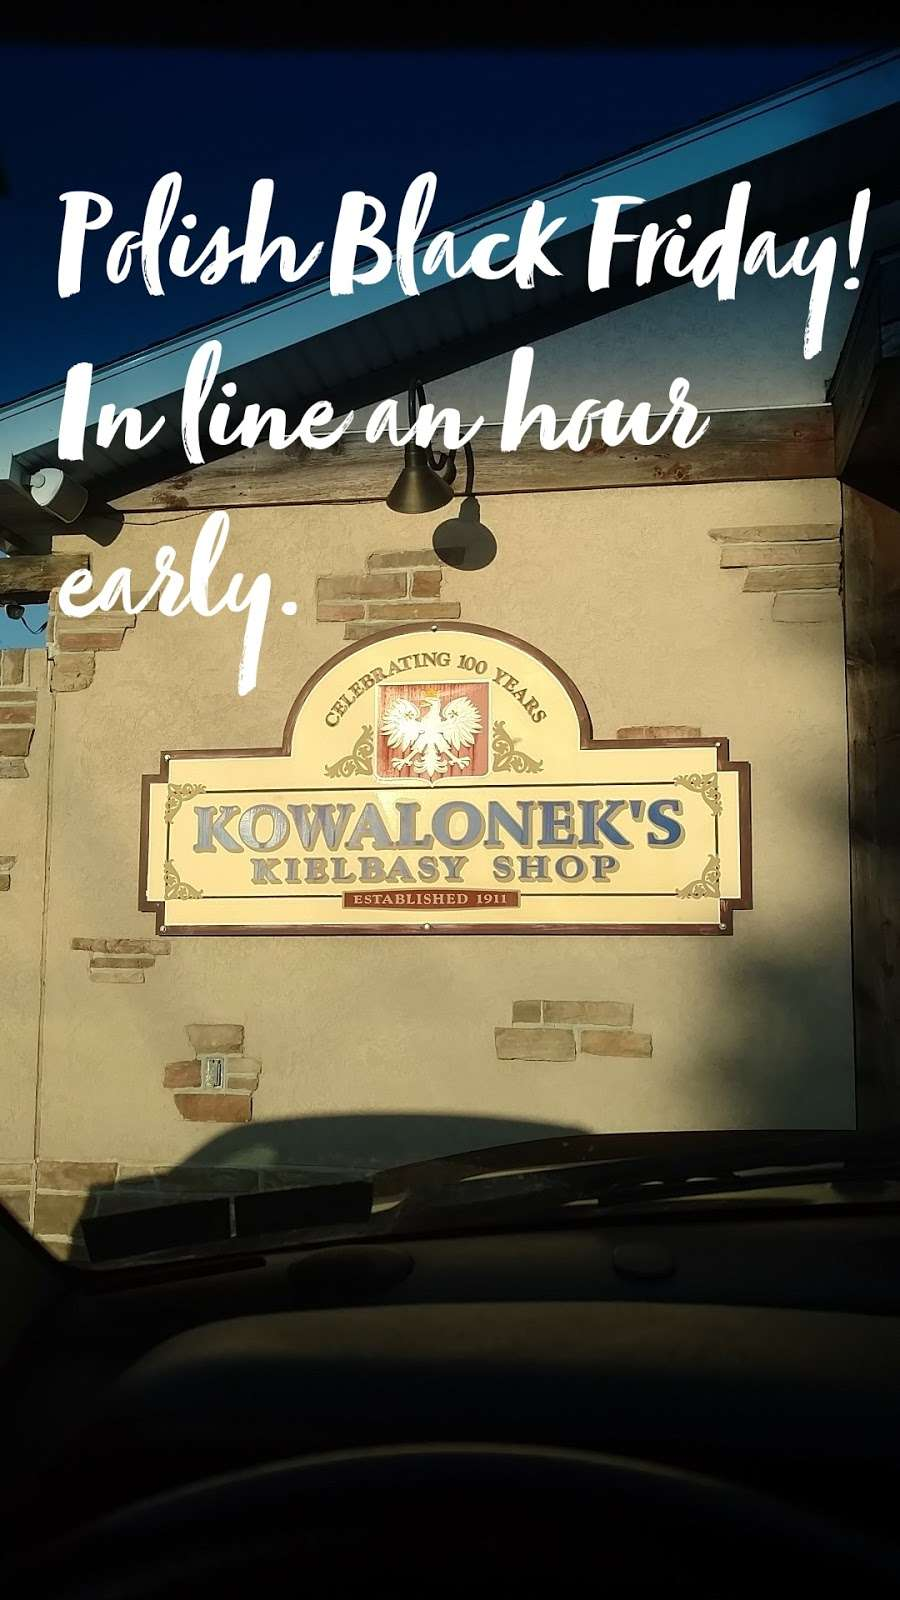 Kowaloneks Kielbasy Shop - store  | Photo 8 of 10 | Address: 332 S Main St, Shenandoah, PA 17976, USA | Phone: (570) 462-1263